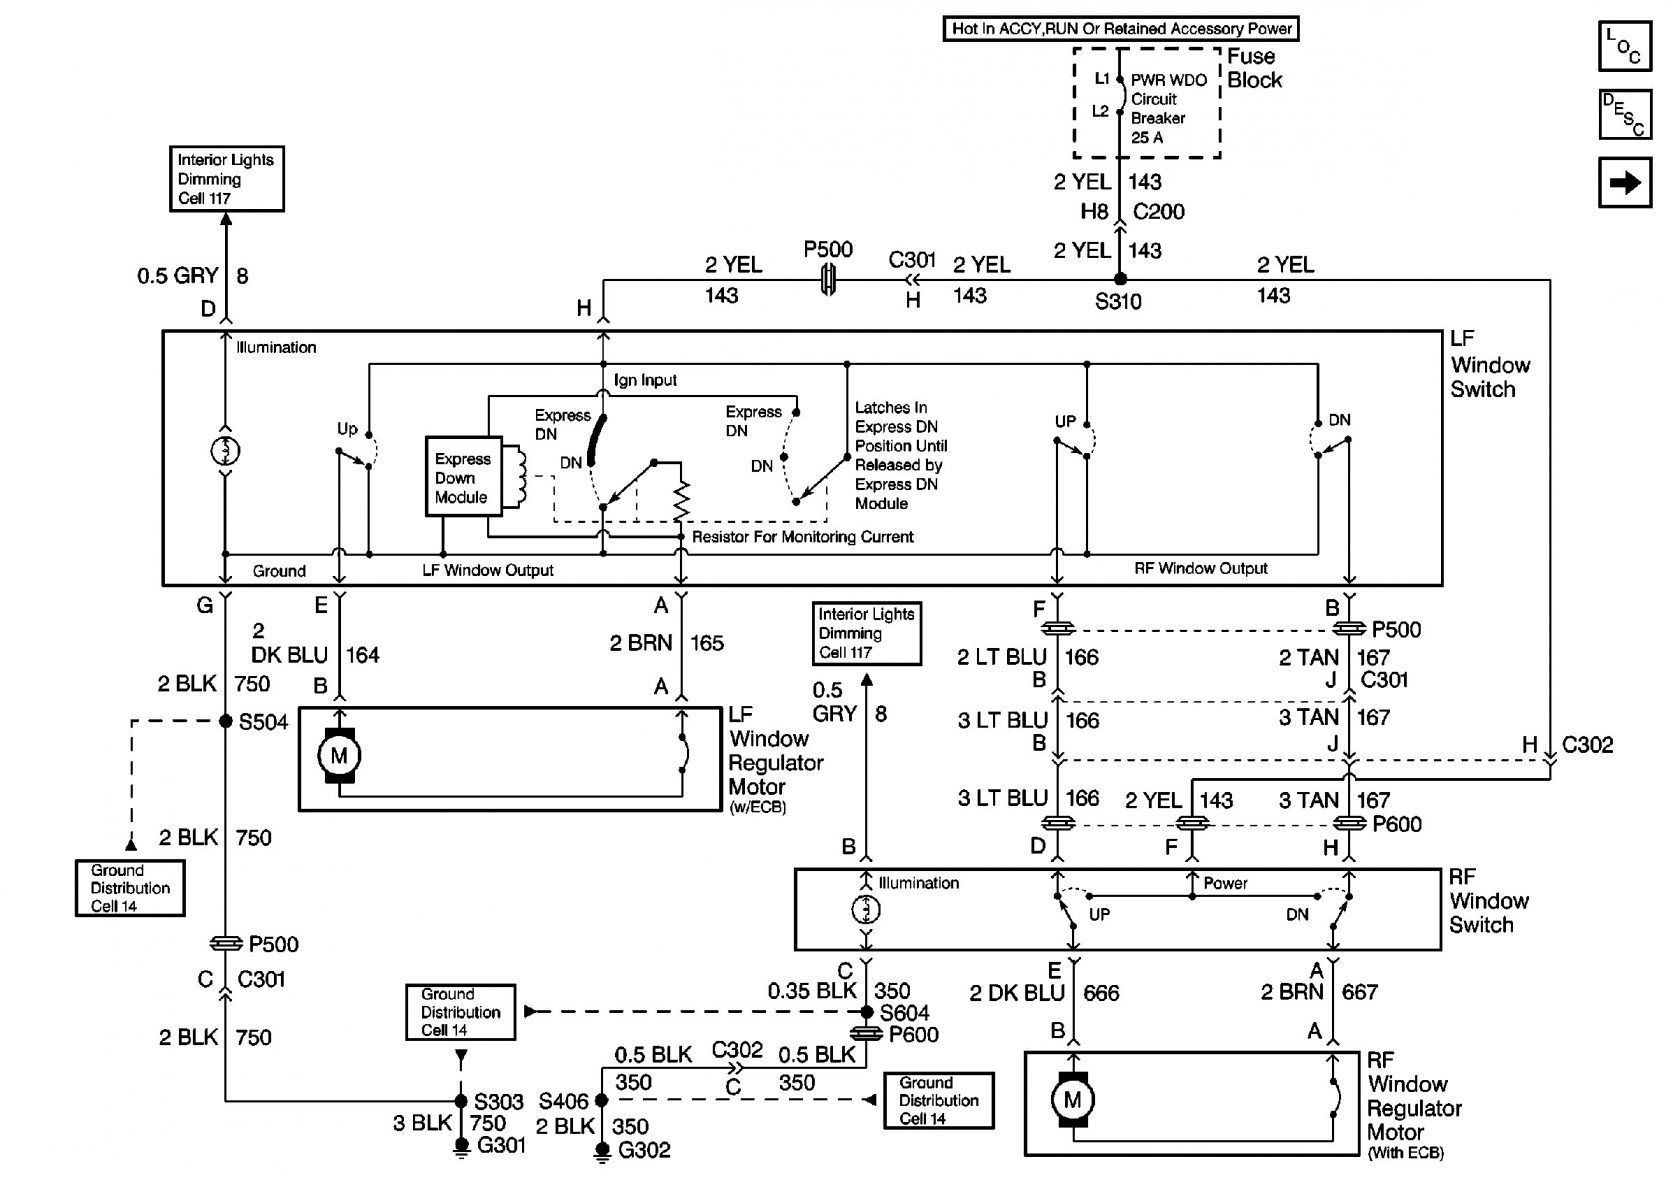 Subaru Fuel Gage Wiring Diagram Schematics Diagrams 87 Gl Wire Harness 2 5l Engine Oil Flow Best Site 1987 1998